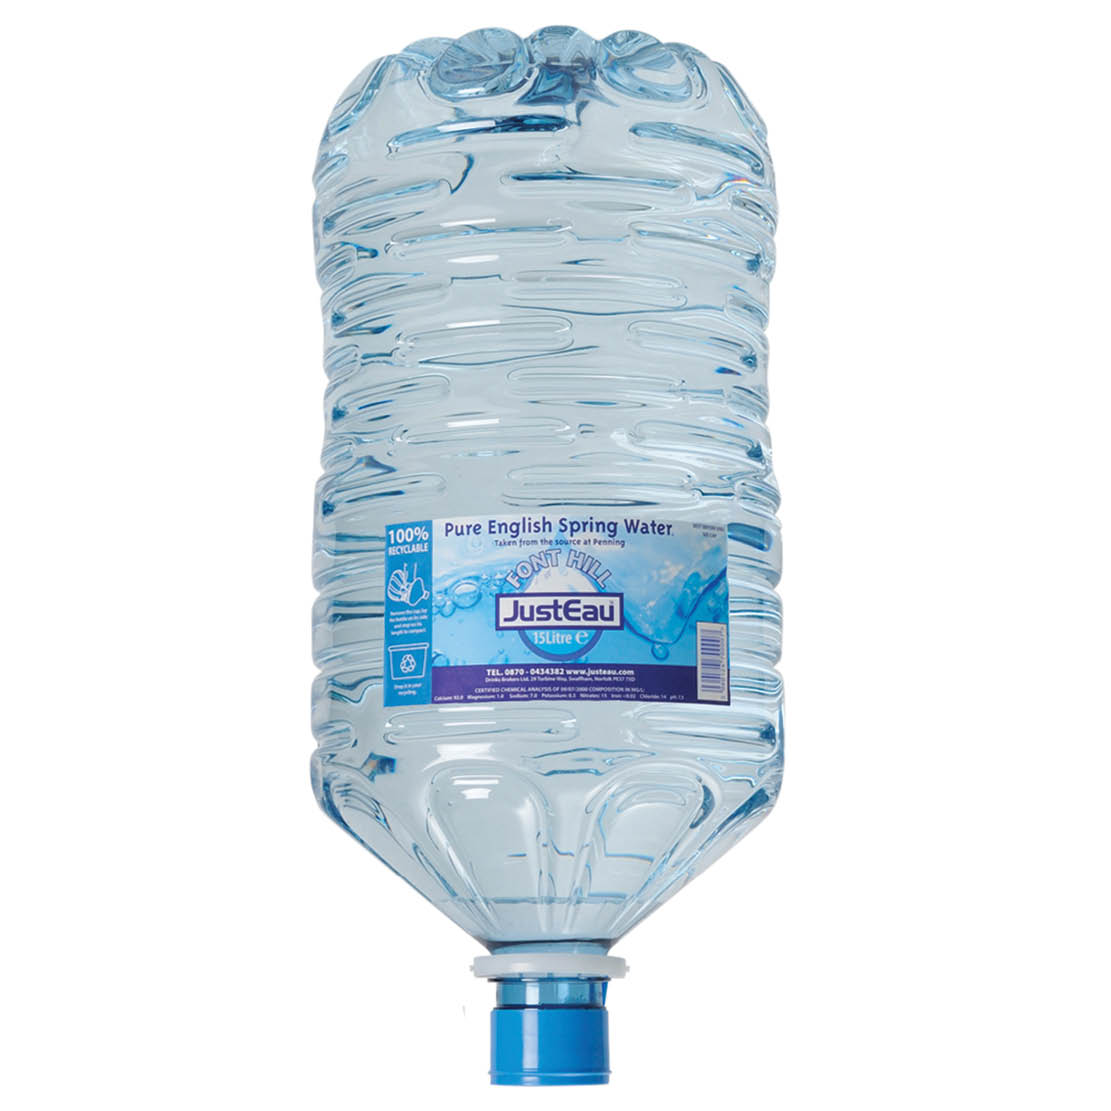 15 Litre Pure English Spring Mineral Water Refill Bottle (Min Order Qty = 2) [3-5 day Delivery]